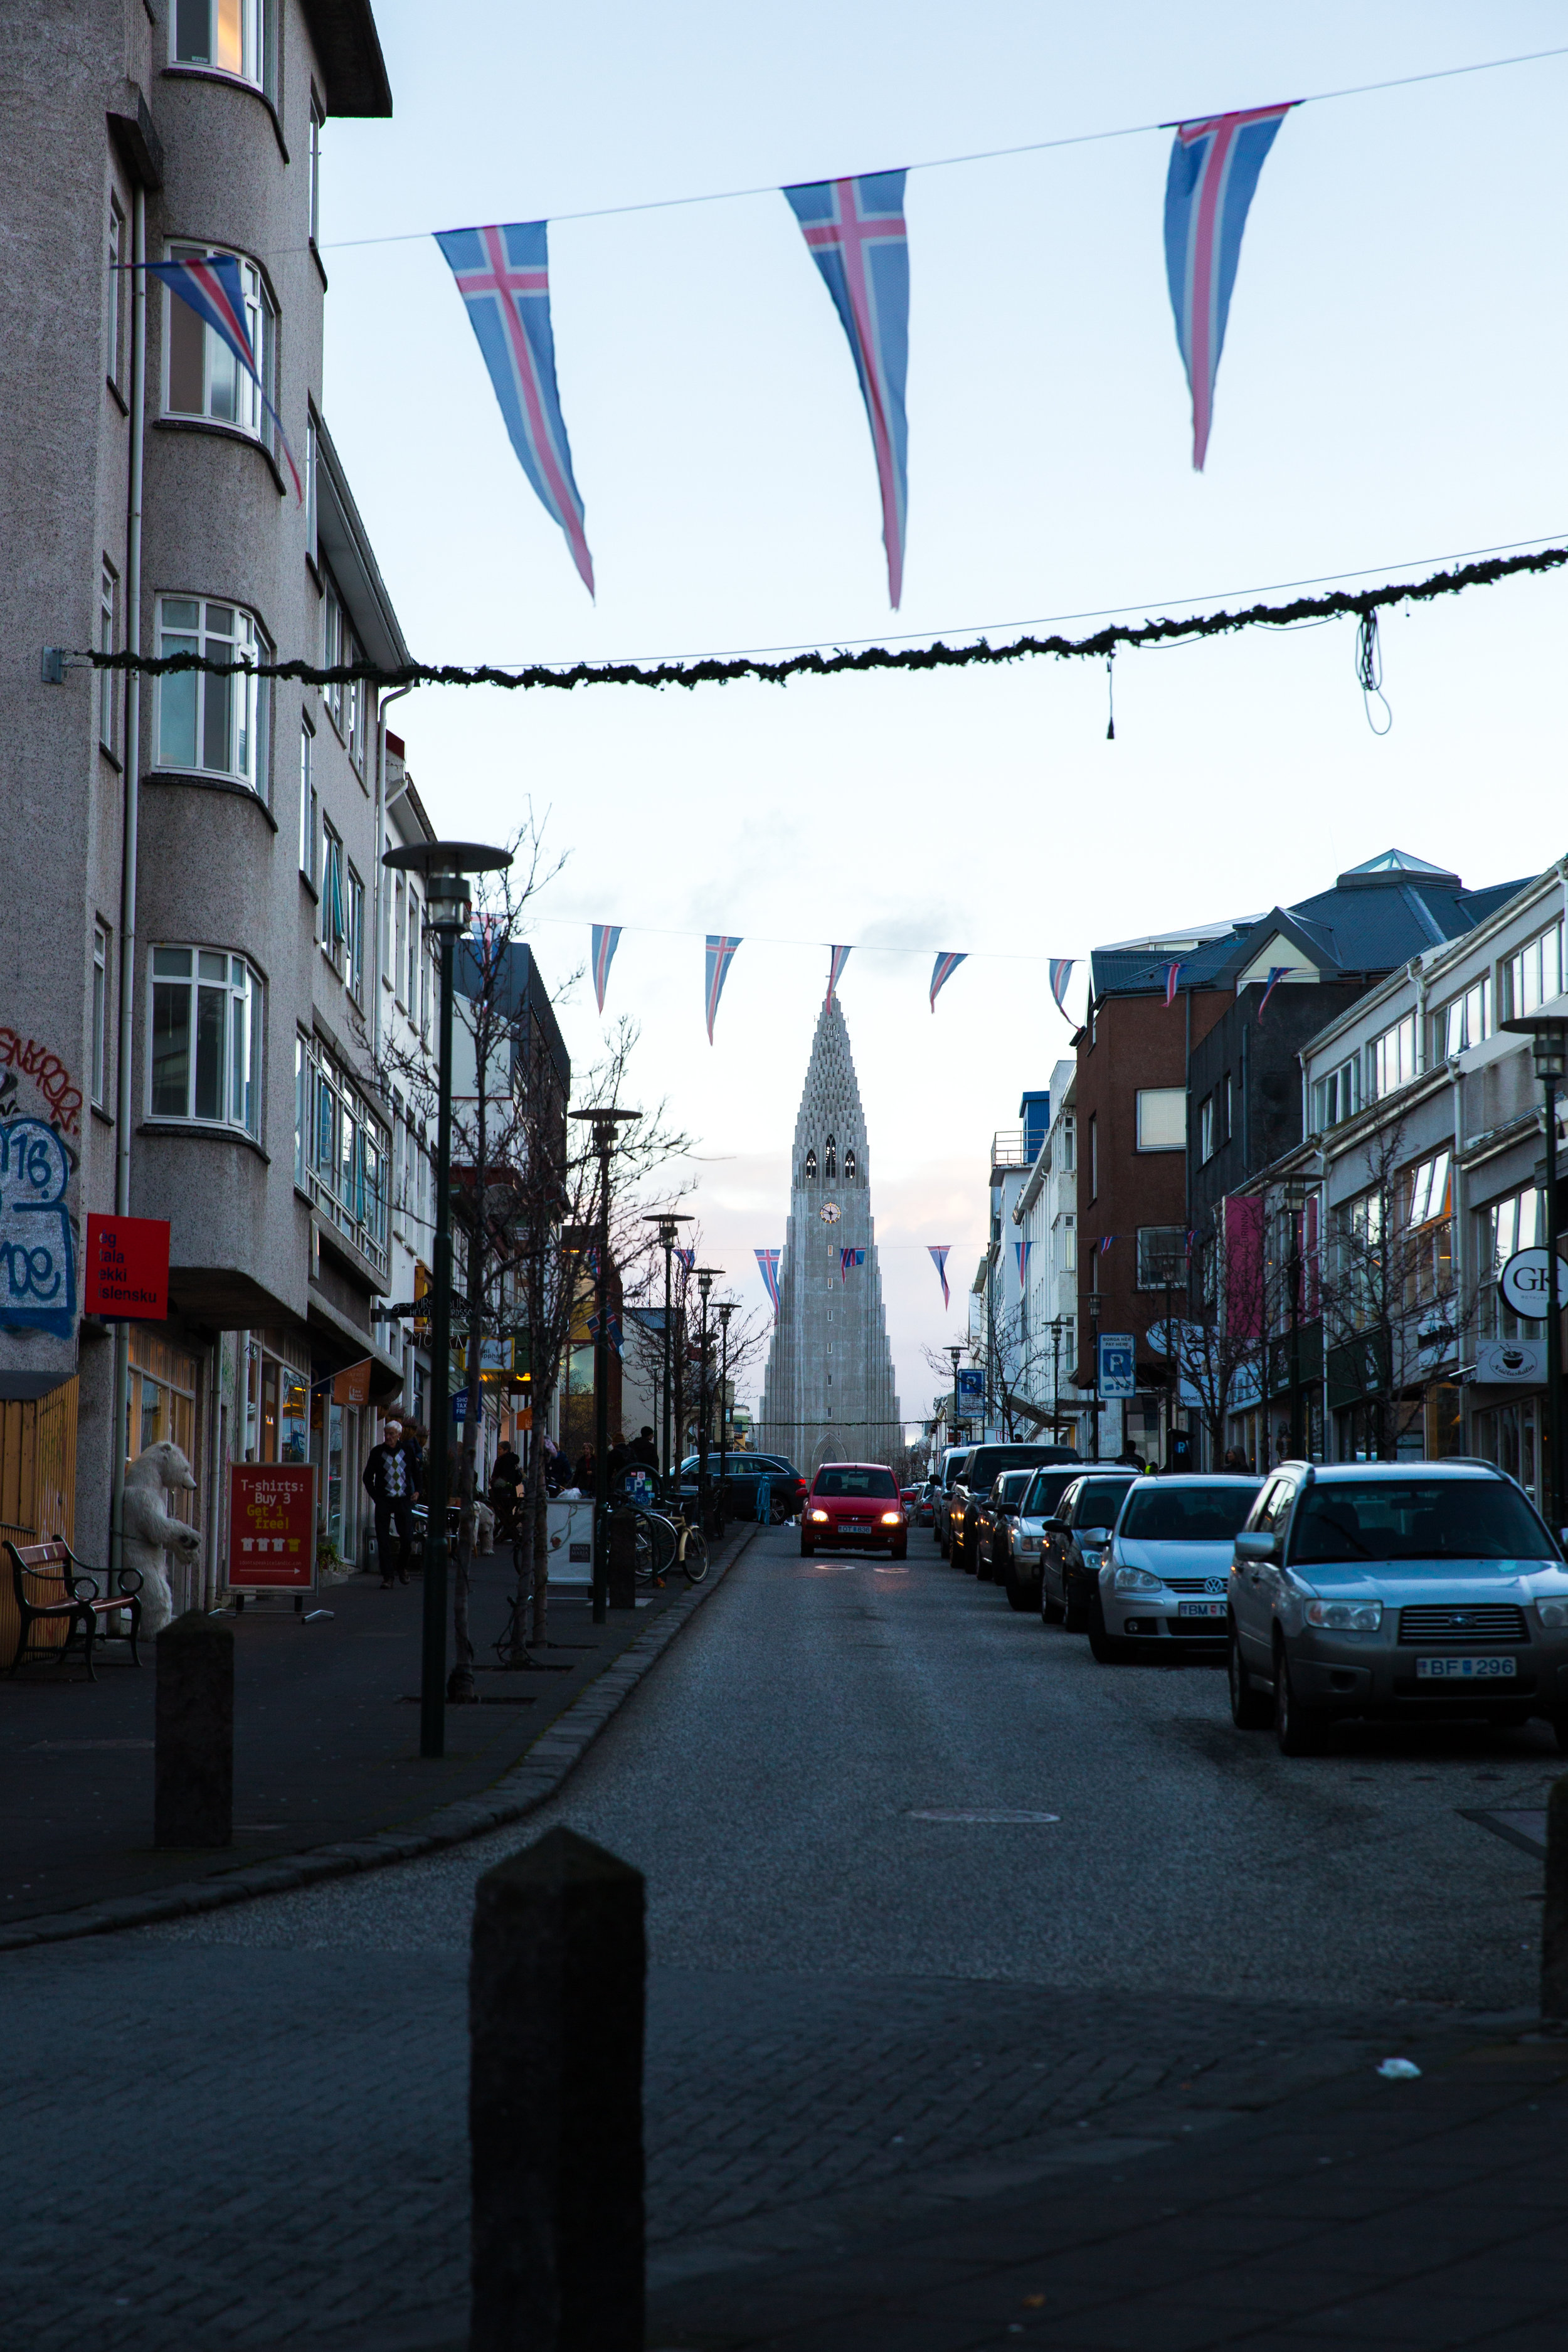 Night coming on quickly on the streets of Reykjavik. Banners to the Icelandic people wave freely throughout the streets.